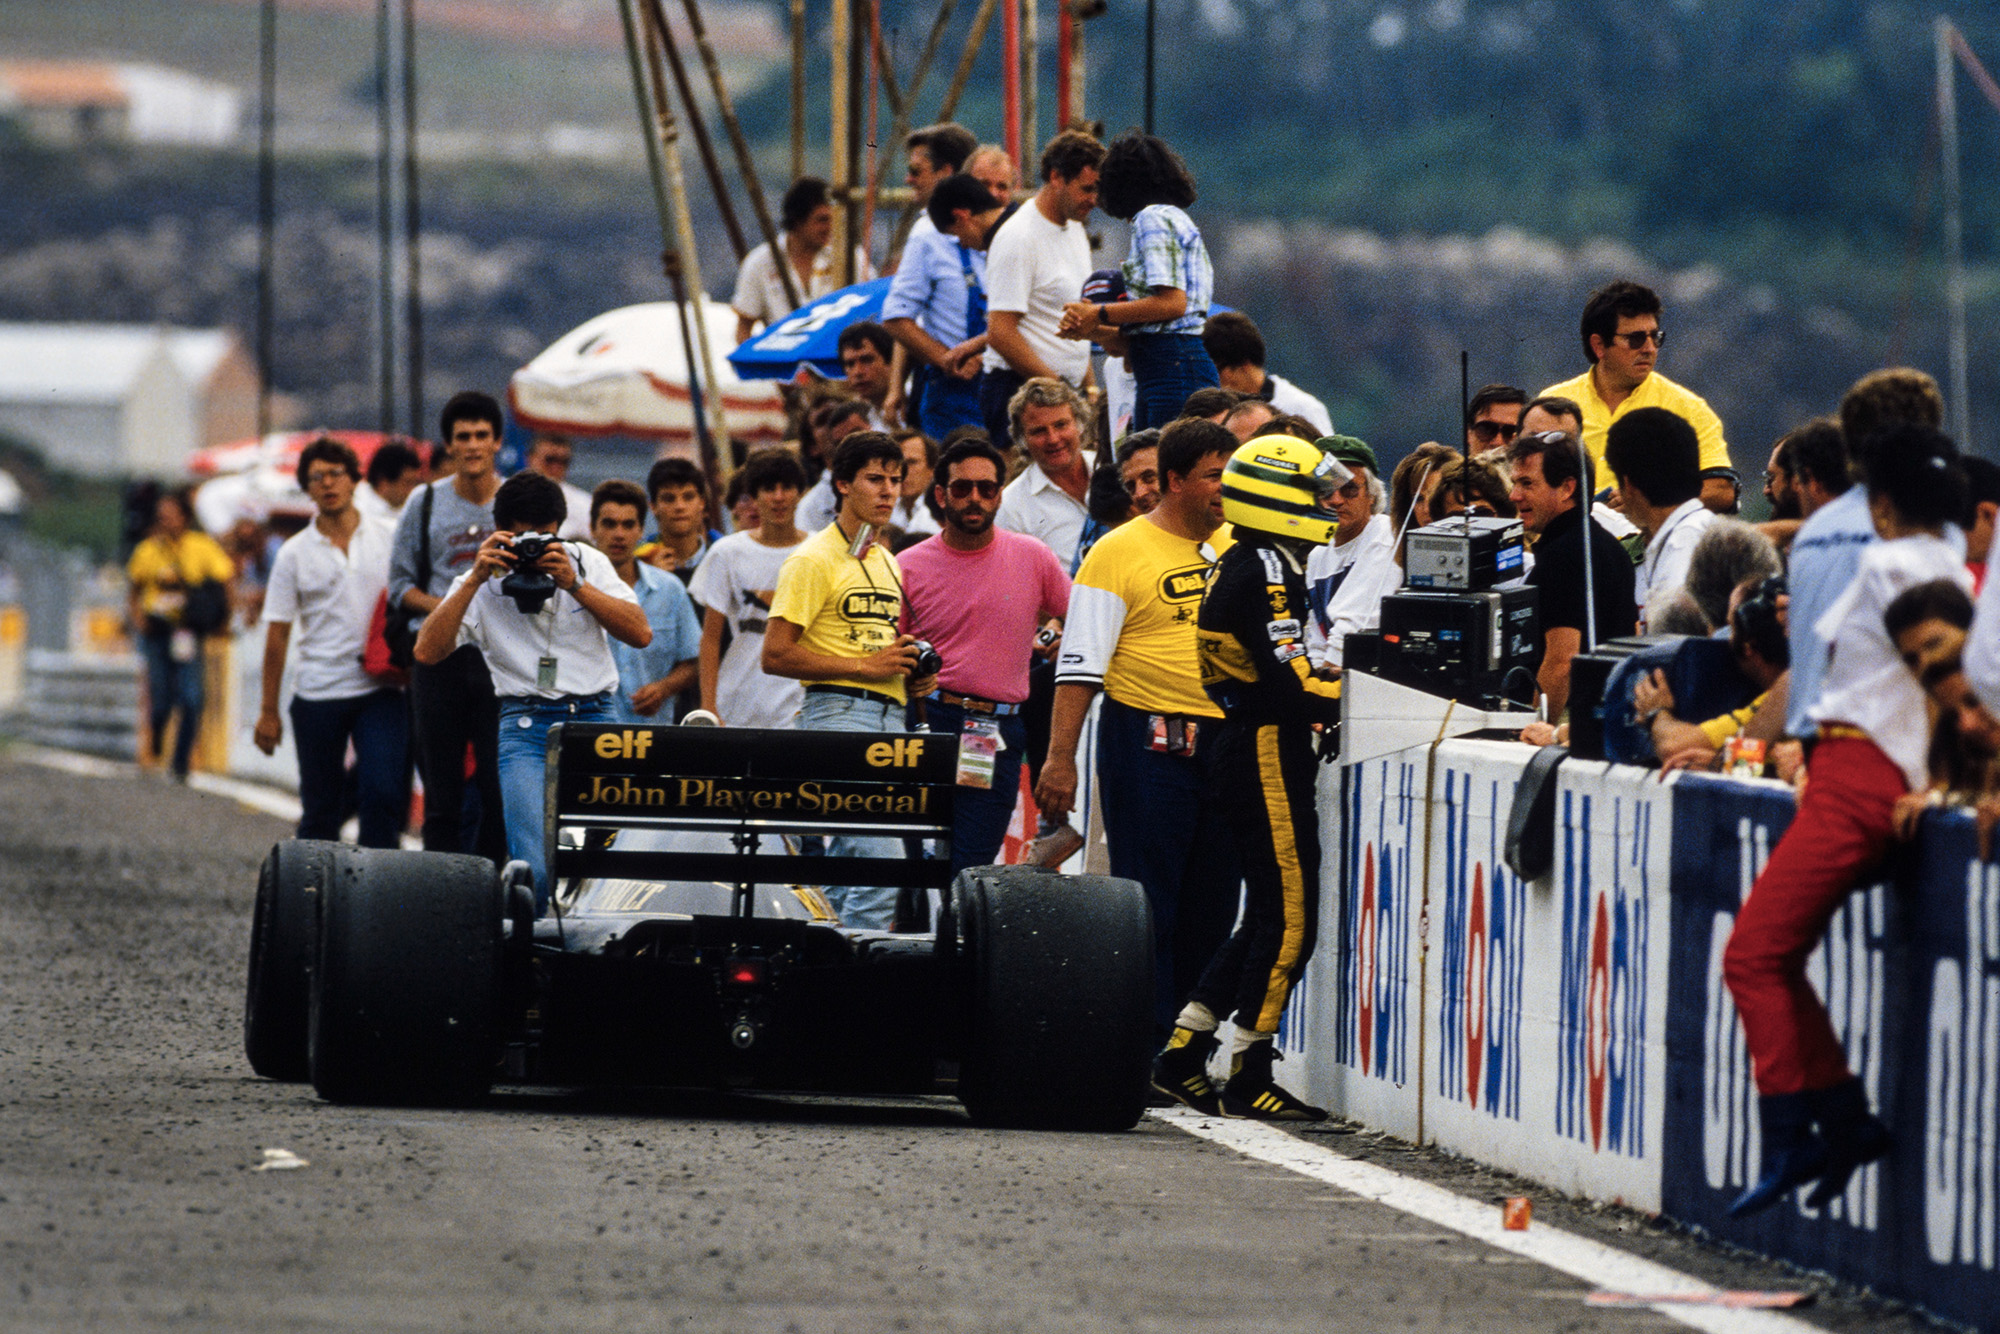 Ayrton Senna talks to his pit crew at the side of the track after running out of fuel in the 1986 F1 Portuguese Grand Prix